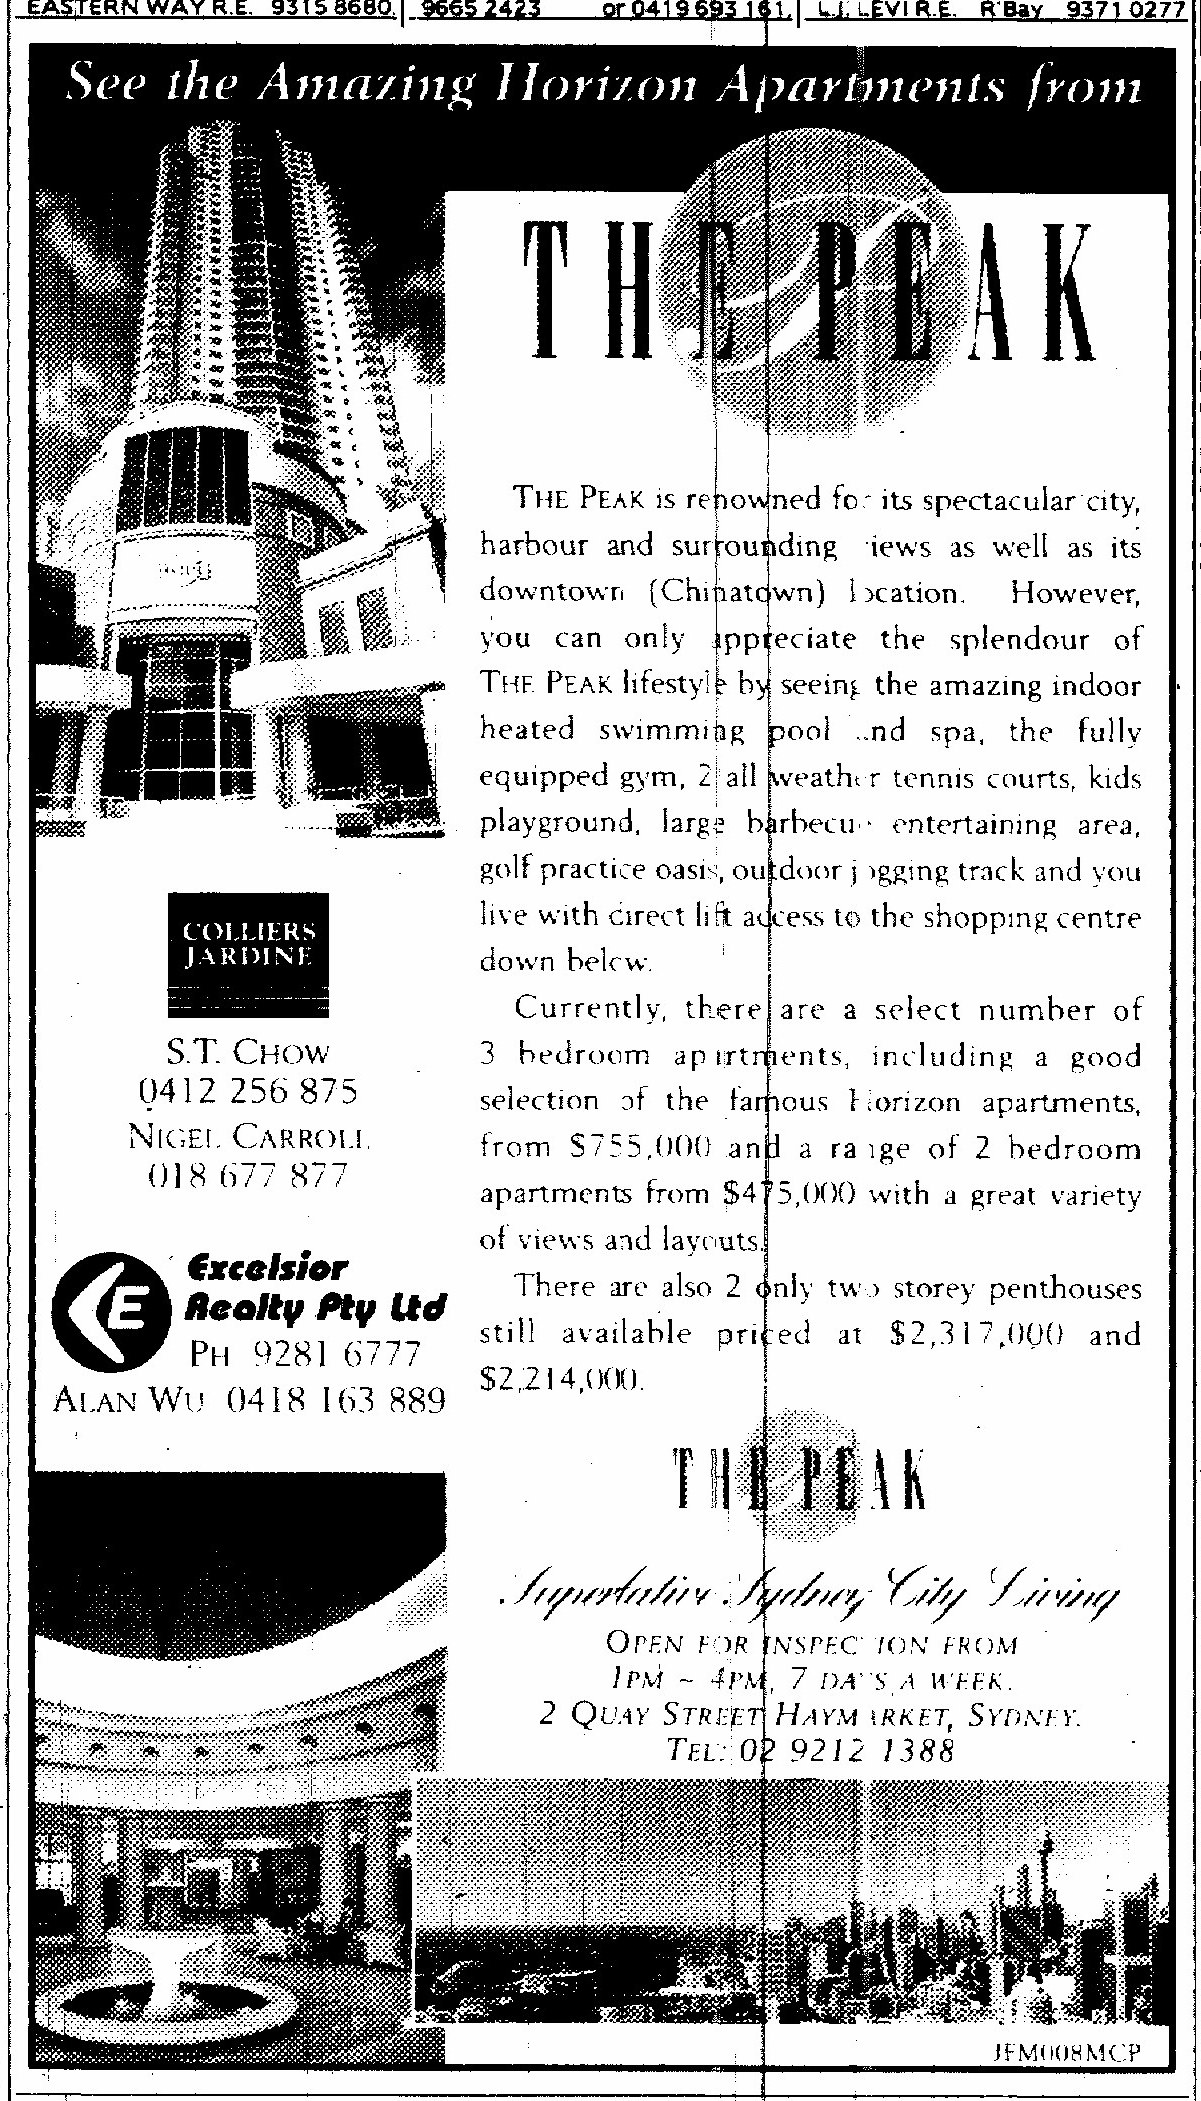 The Peak Haymarket Ad July 5 1997 SMH 14RE